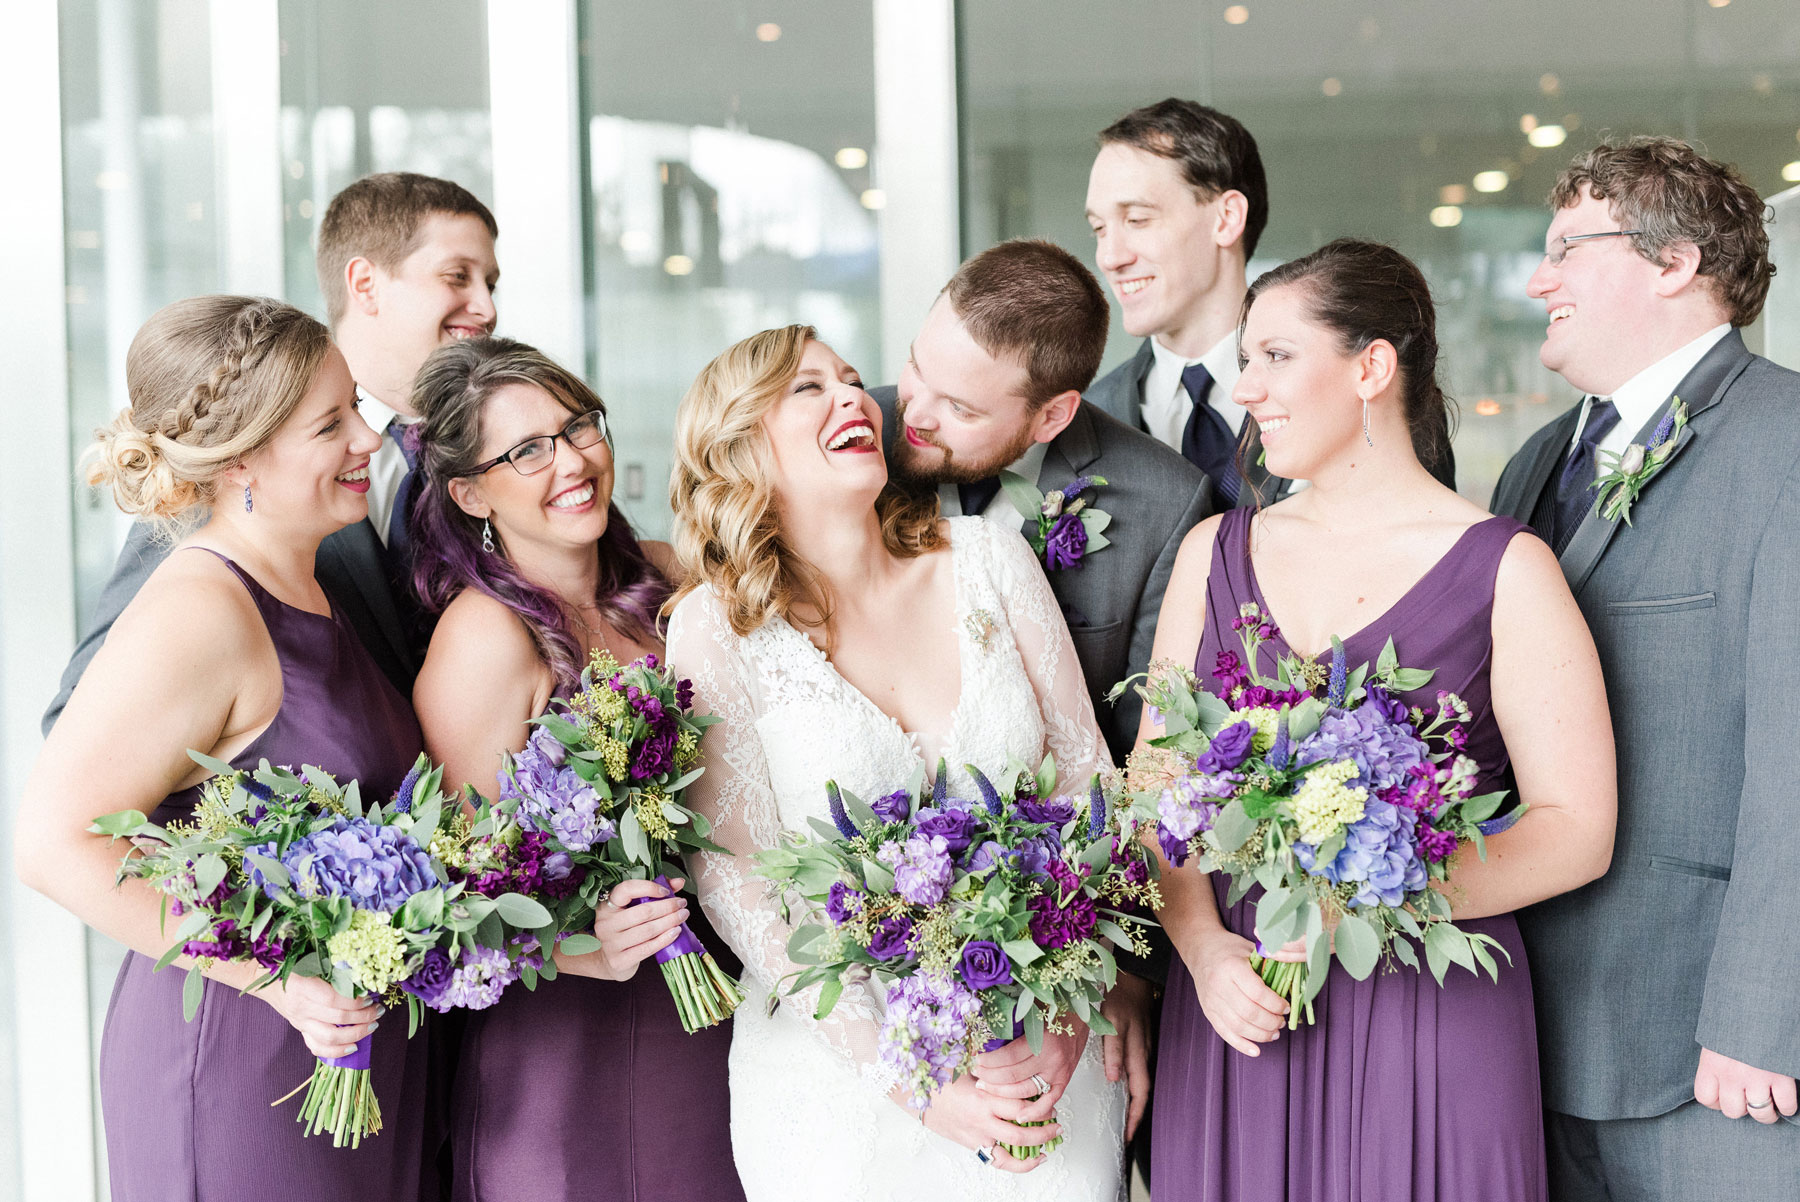 Brittany + Zach - A lush color palette (cue the purples!), gorgeous florals and a beaming bride and groom for this October wedding.